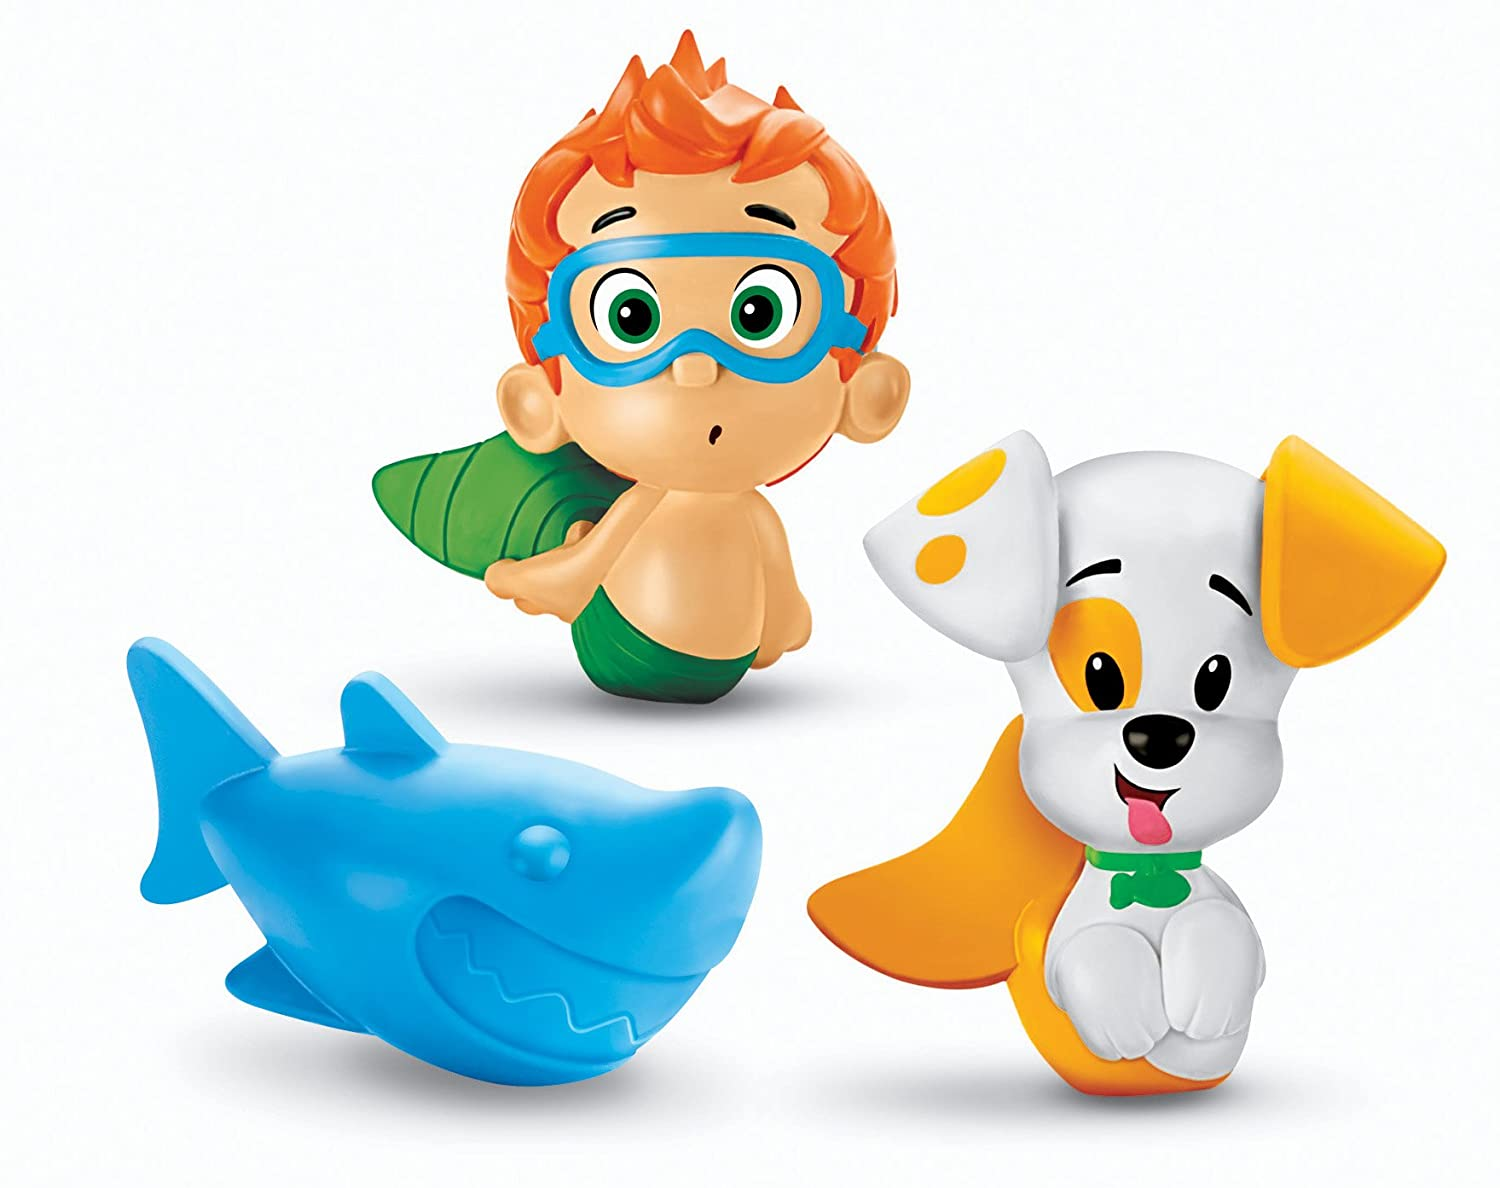 Ordinaire Amazon.com: Fisher Price Nickelodeonu0027s Bubble Guppies Bath Squirters:  Nonny, Bubble Puppy And Shark: Toys U0026 Games